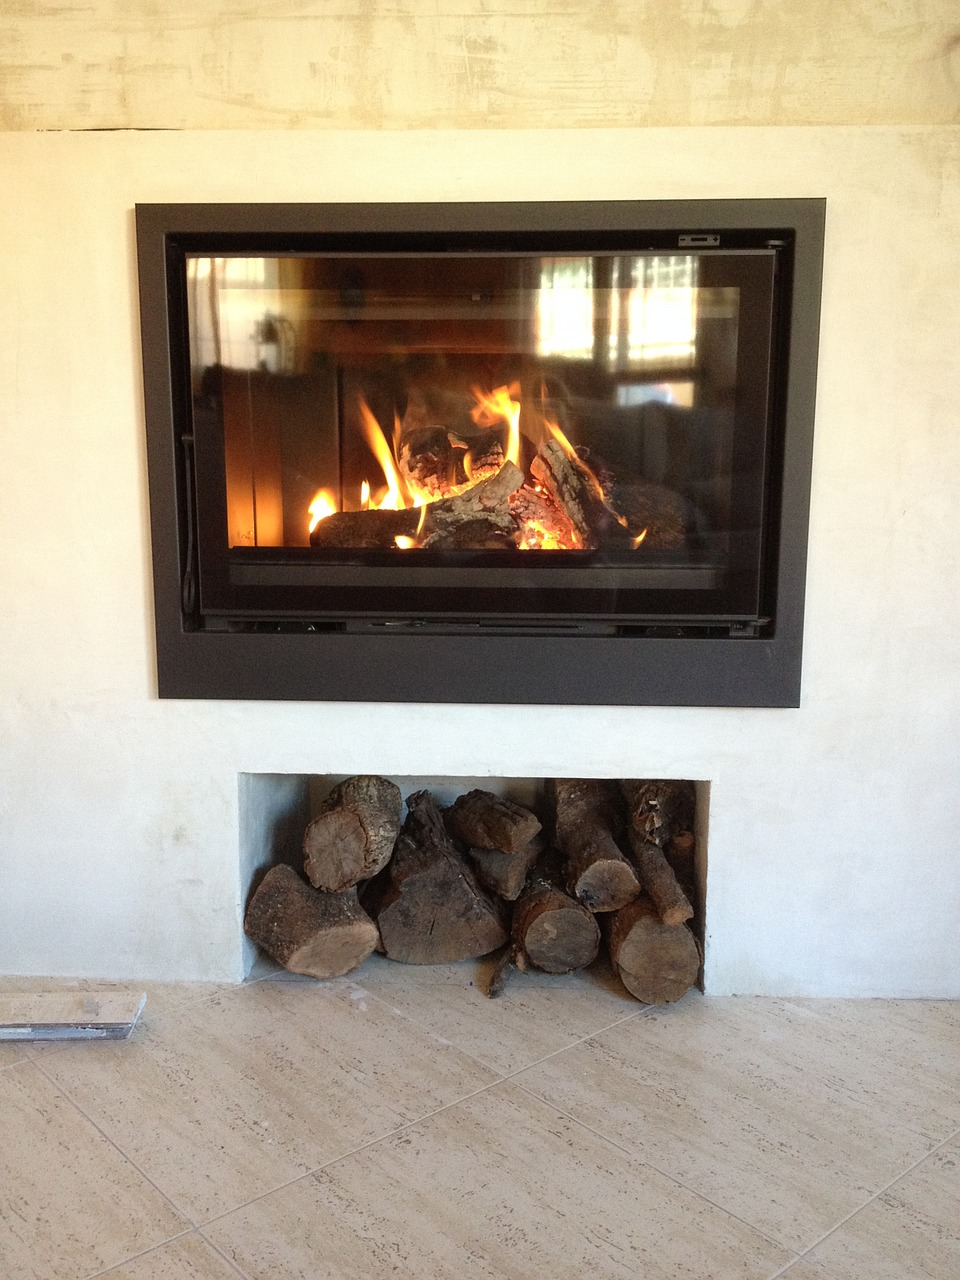 Wood Stoves Maine WB Designs - Wood Stoves Maine WB Designs